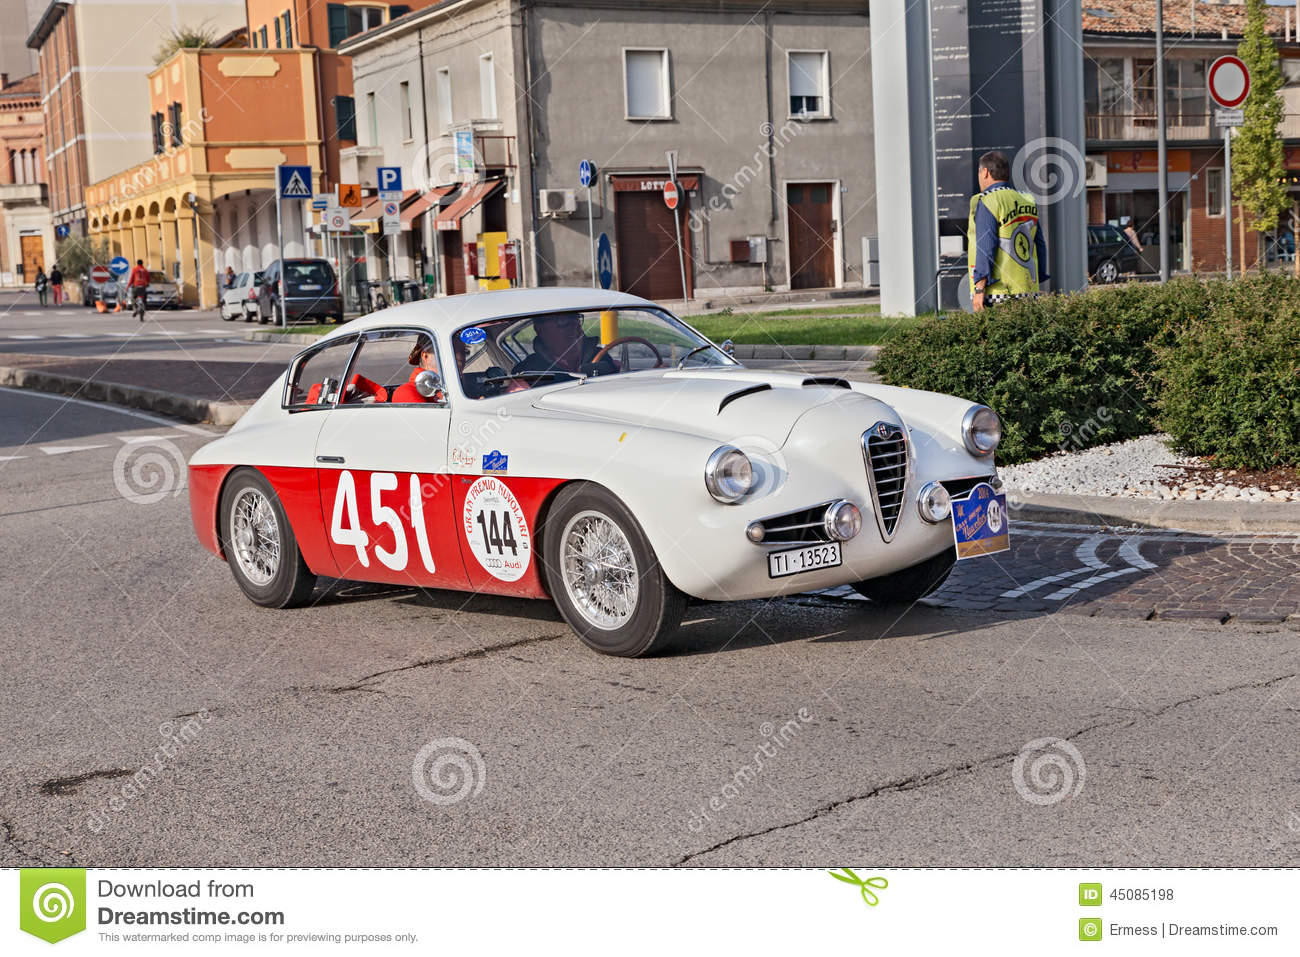 alfa romeo 1900 ssz zagato (1955) editorial stock photo - image of